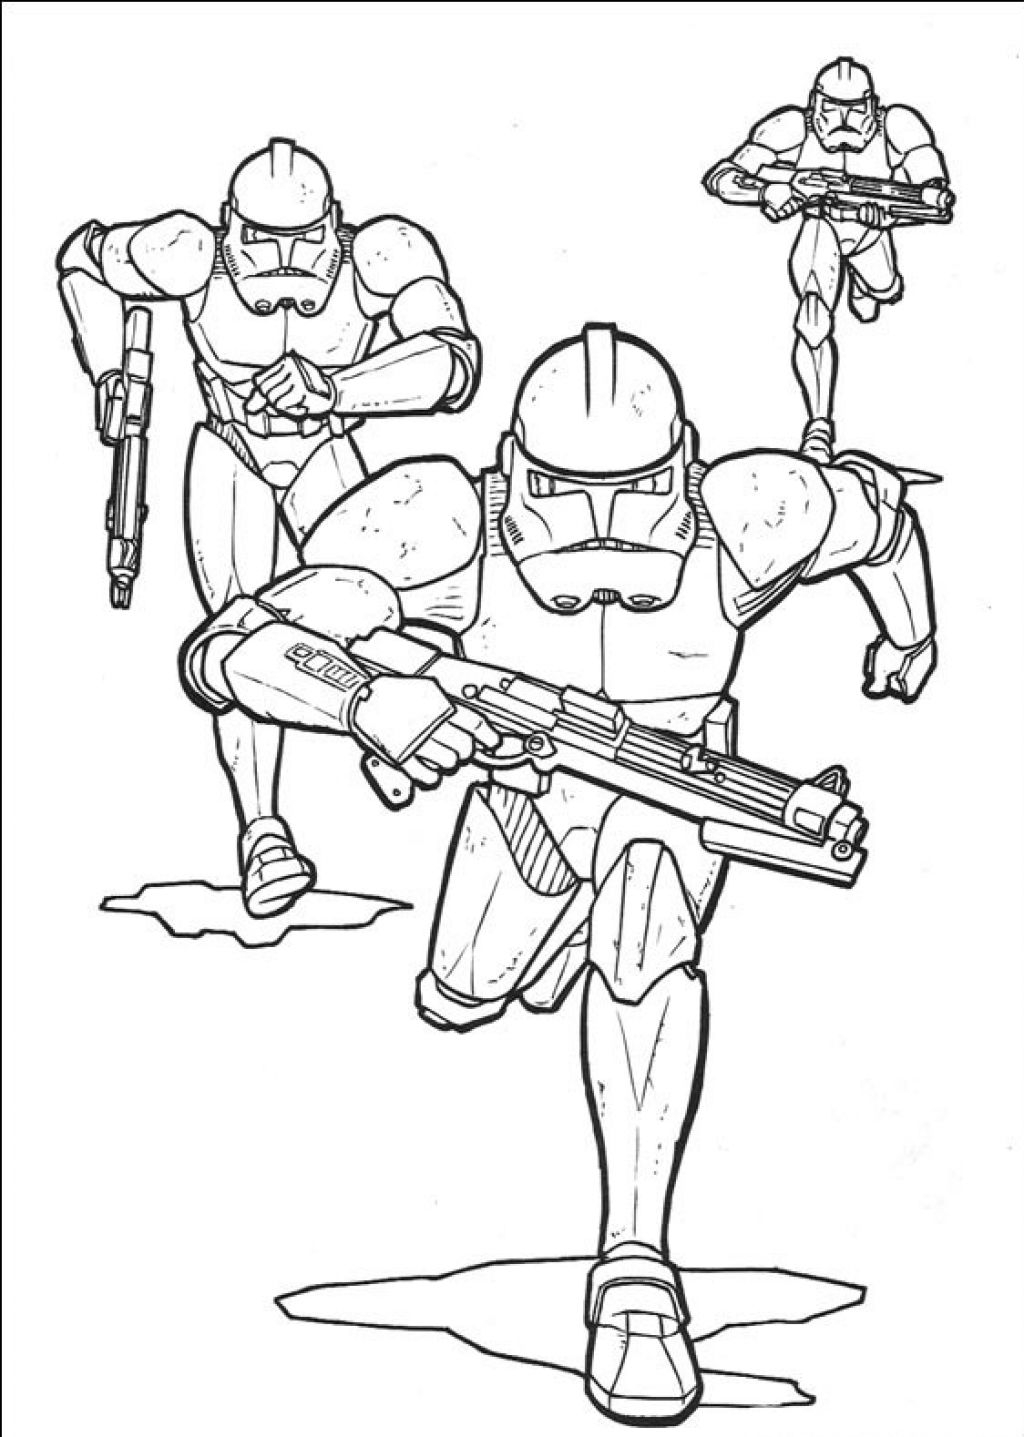 Impressive Star Wars Characters Coloring Pages Follows Cool Article to Print Of Unique Star Wars Cartoon Characters Coloring Pages Collection to Print